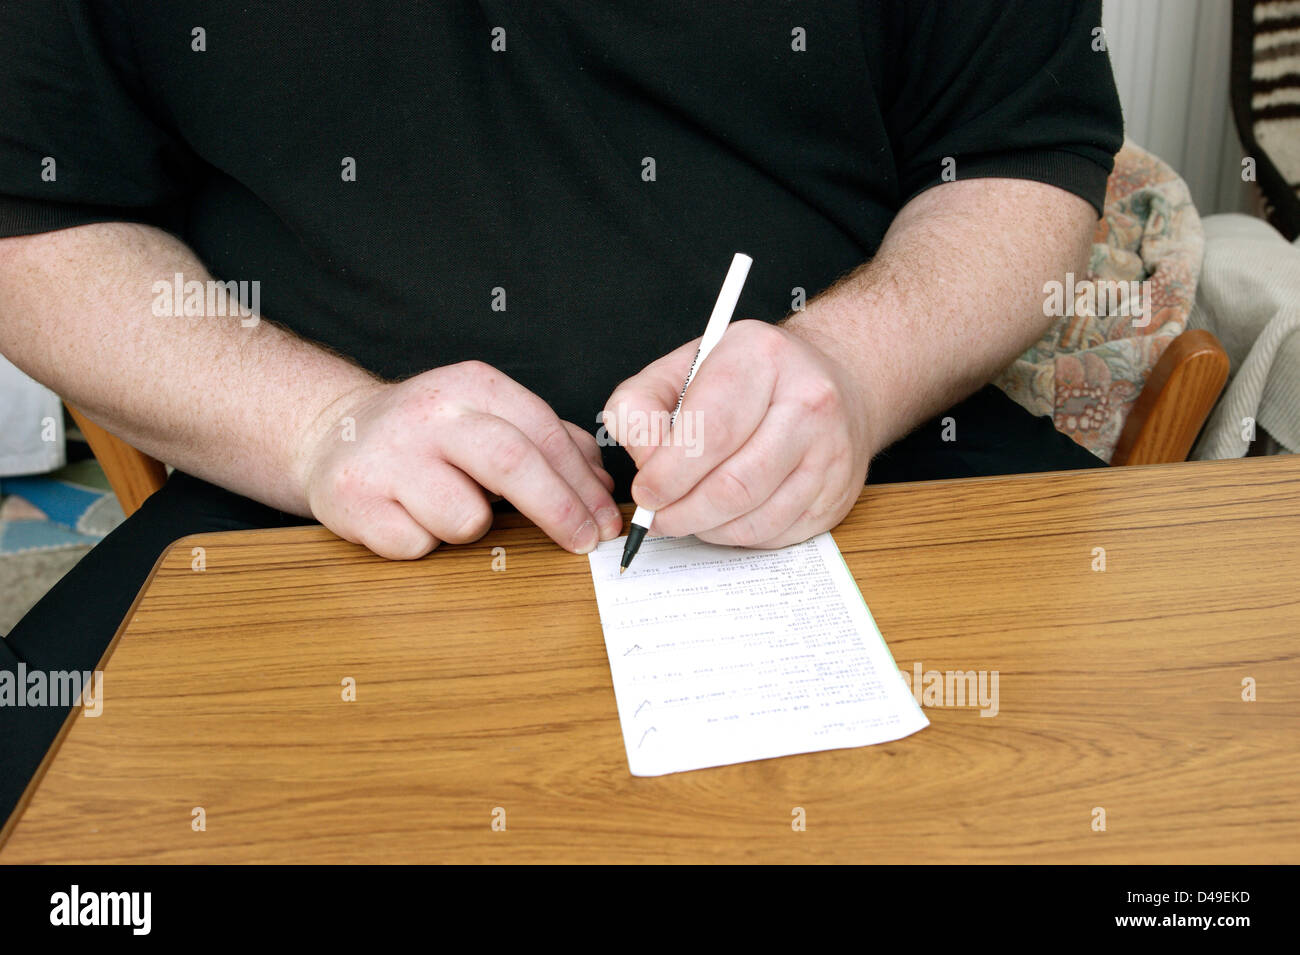 Man filling in form requesting repeat prescription / prescriptions - Stock Image